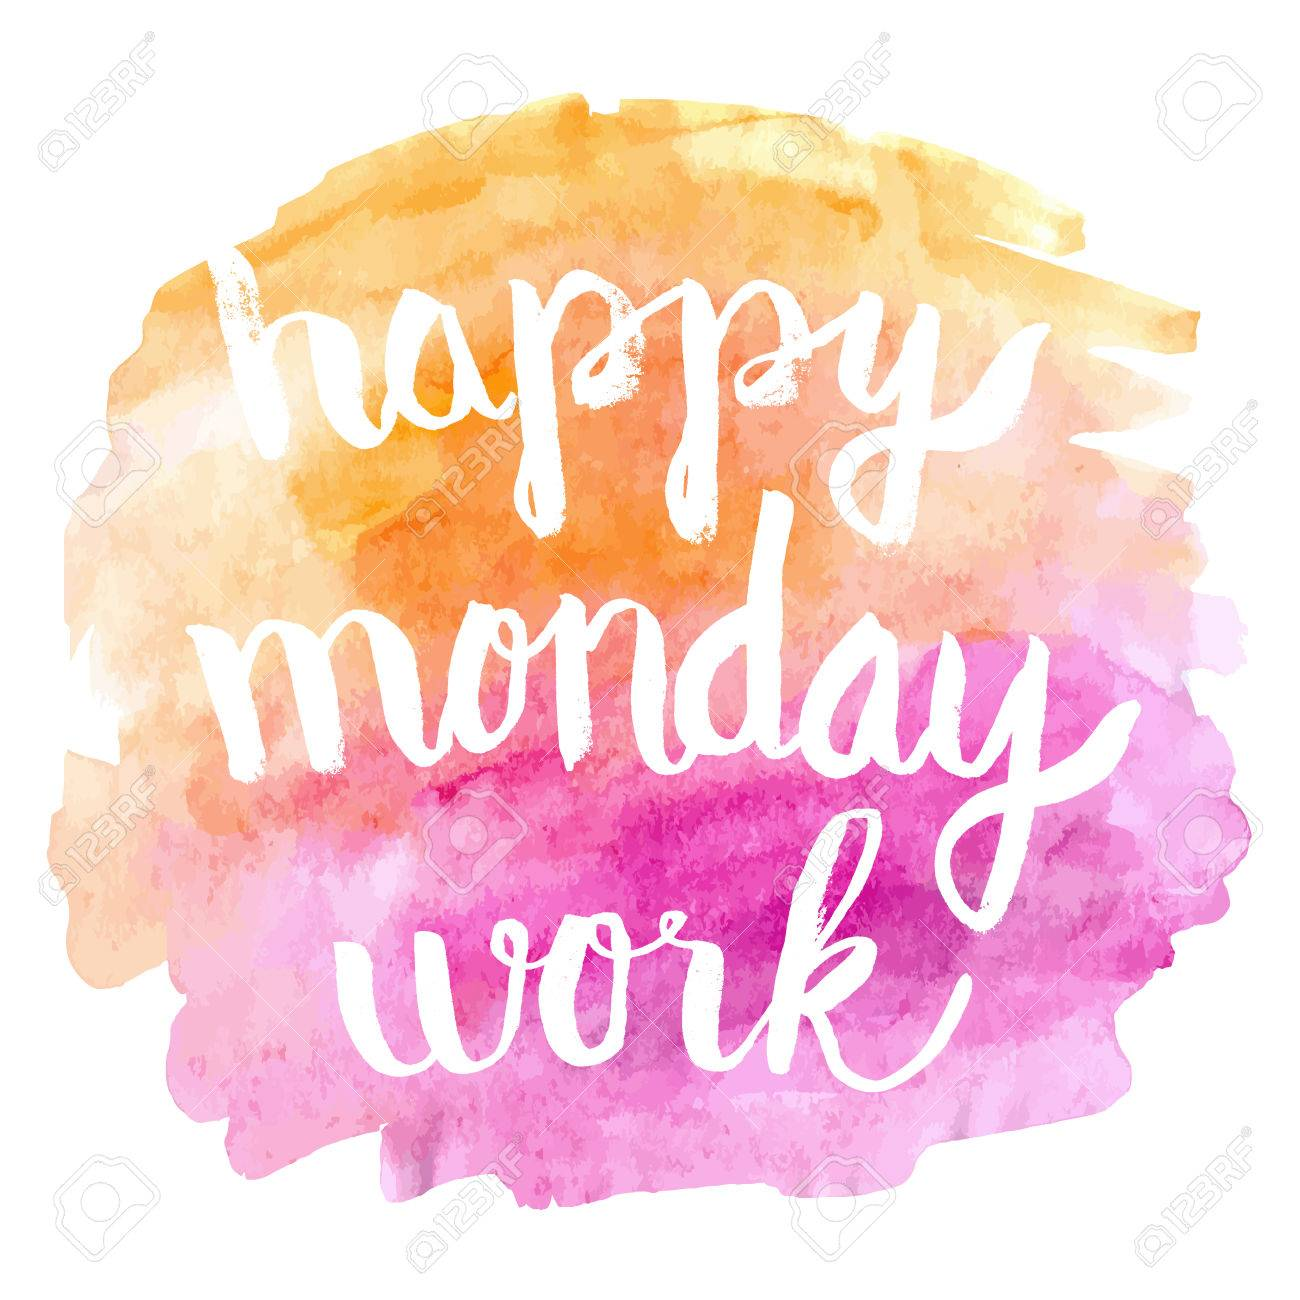 Happy Monday Work On Watercolor Background Greeting Card Royalty